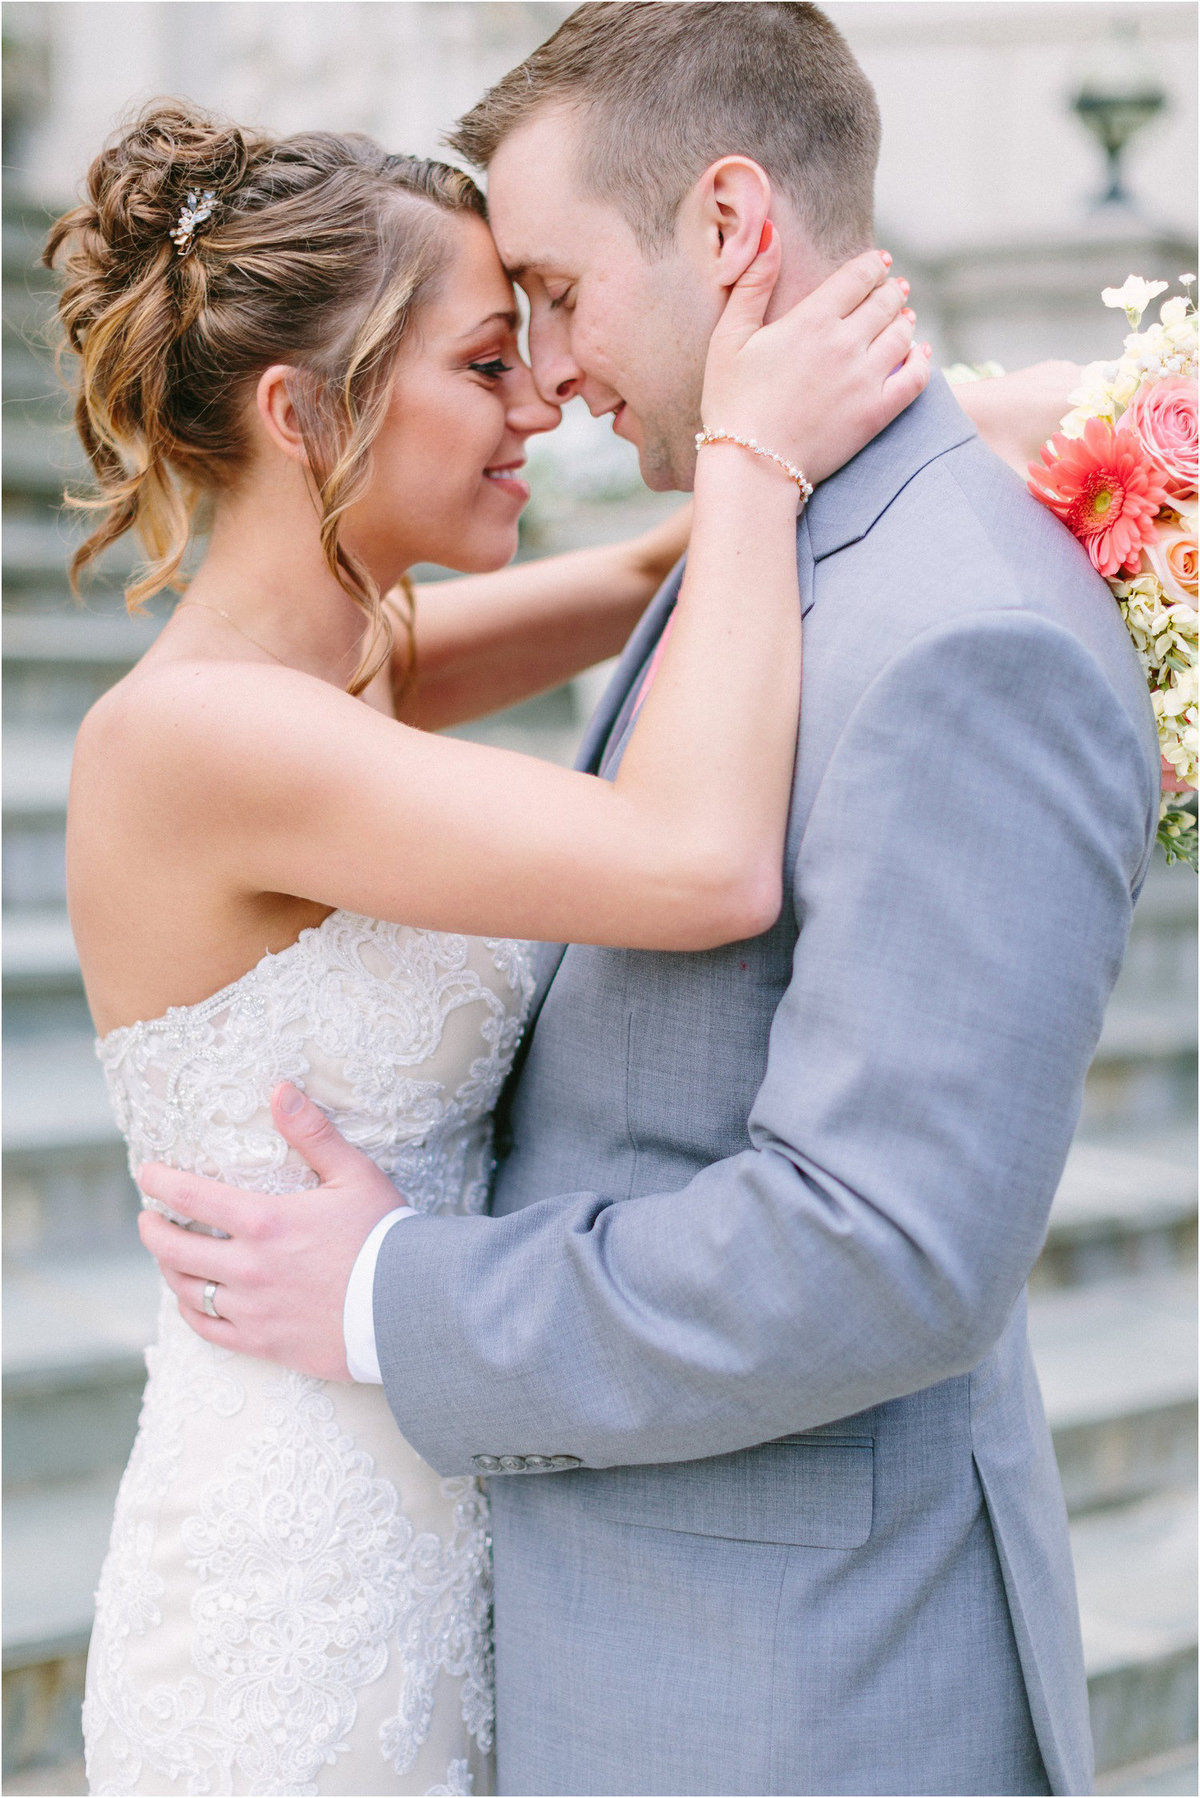 Top wedding coordinators in Warrenton, VA